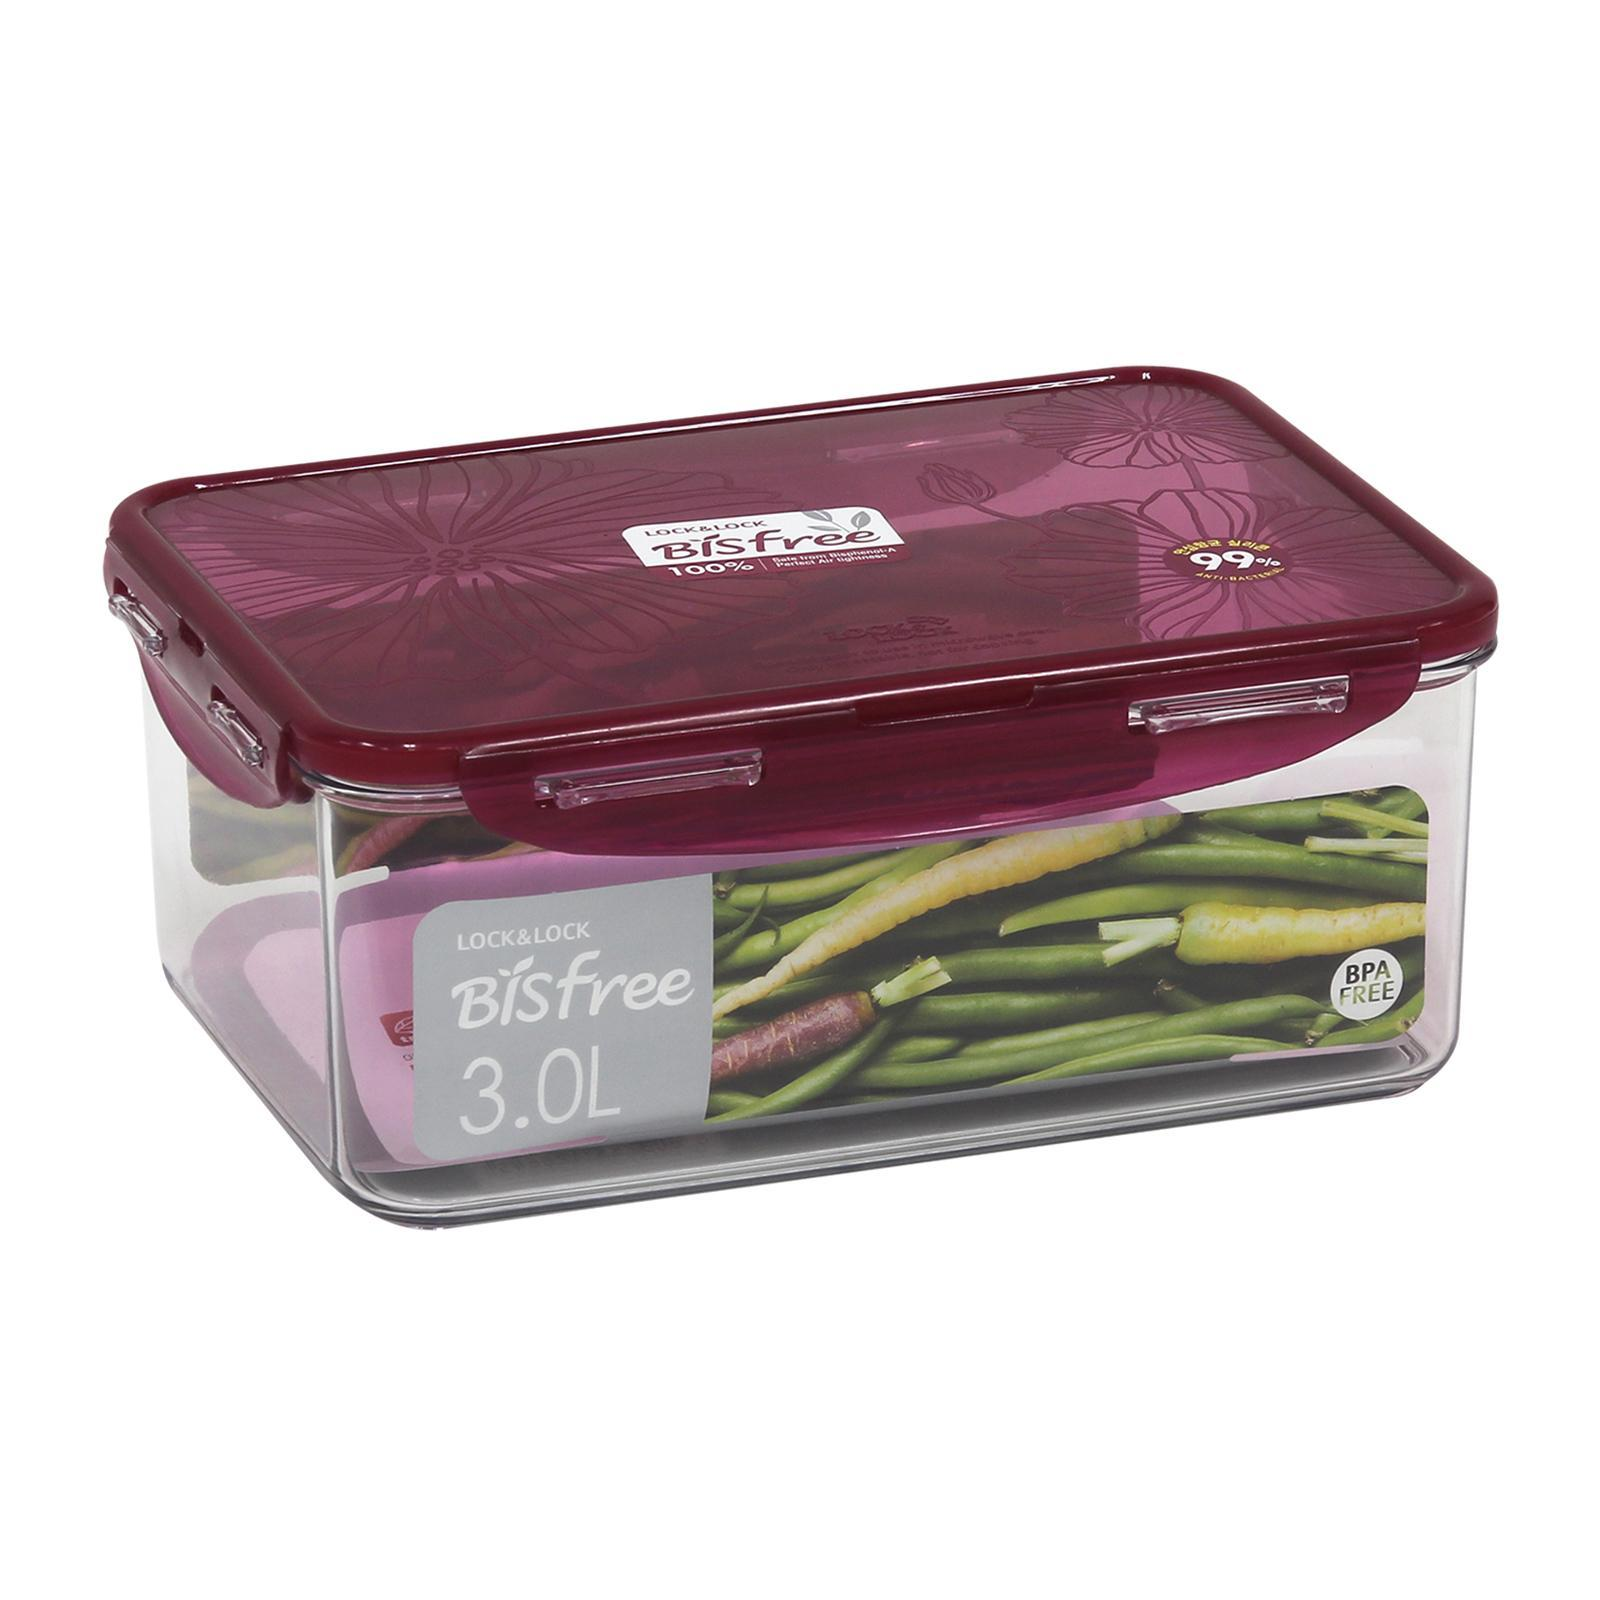 Lock and Lock Bisfree Food Container Rectangle Red